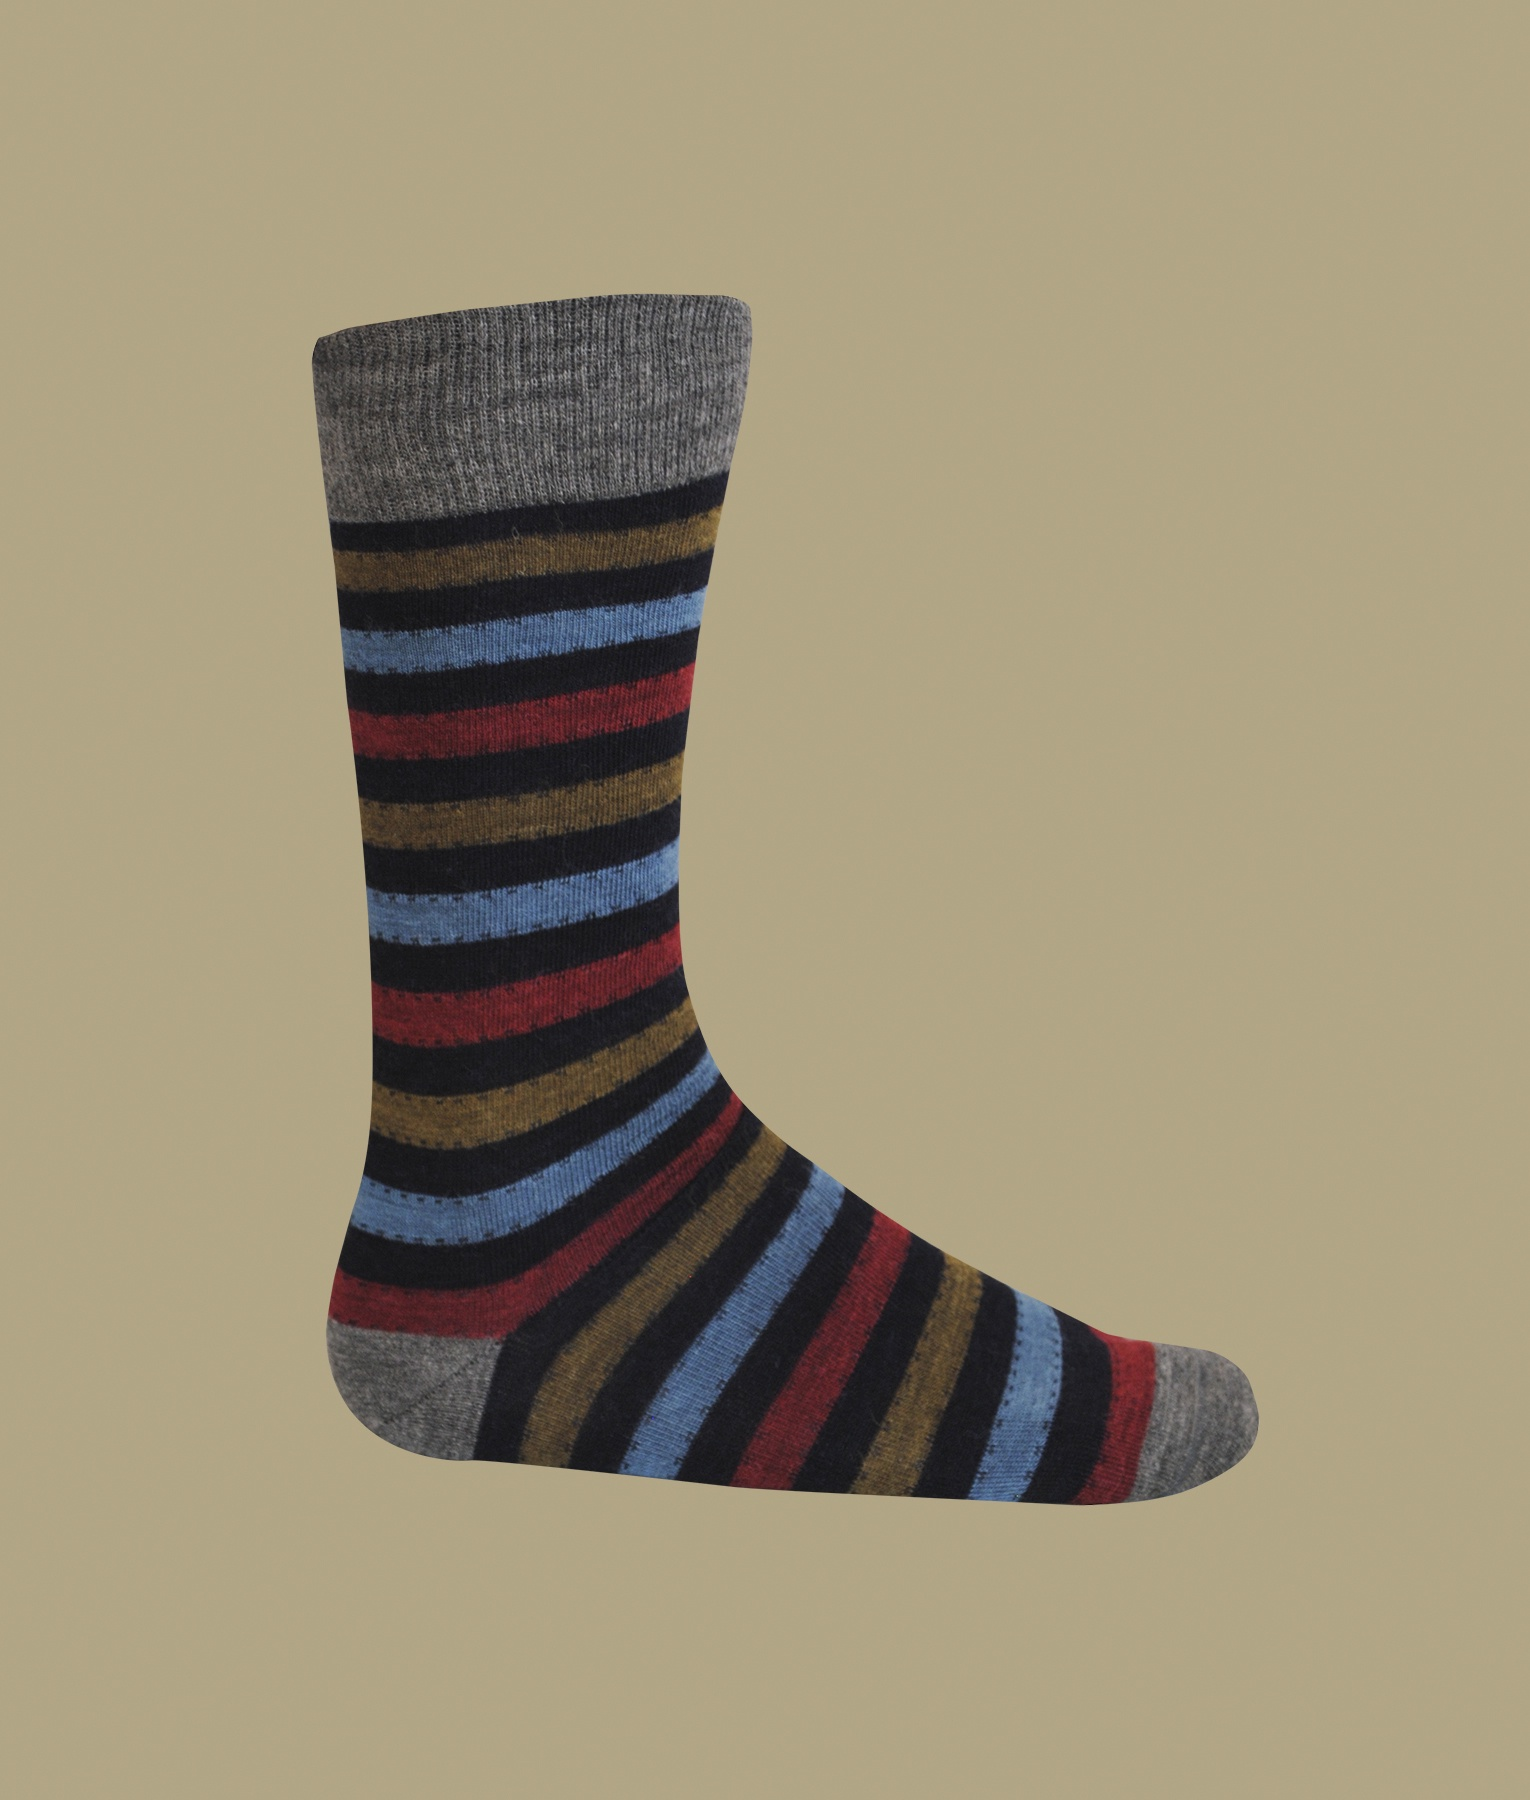 MULTI STRIPES SOCKS, MEN'S